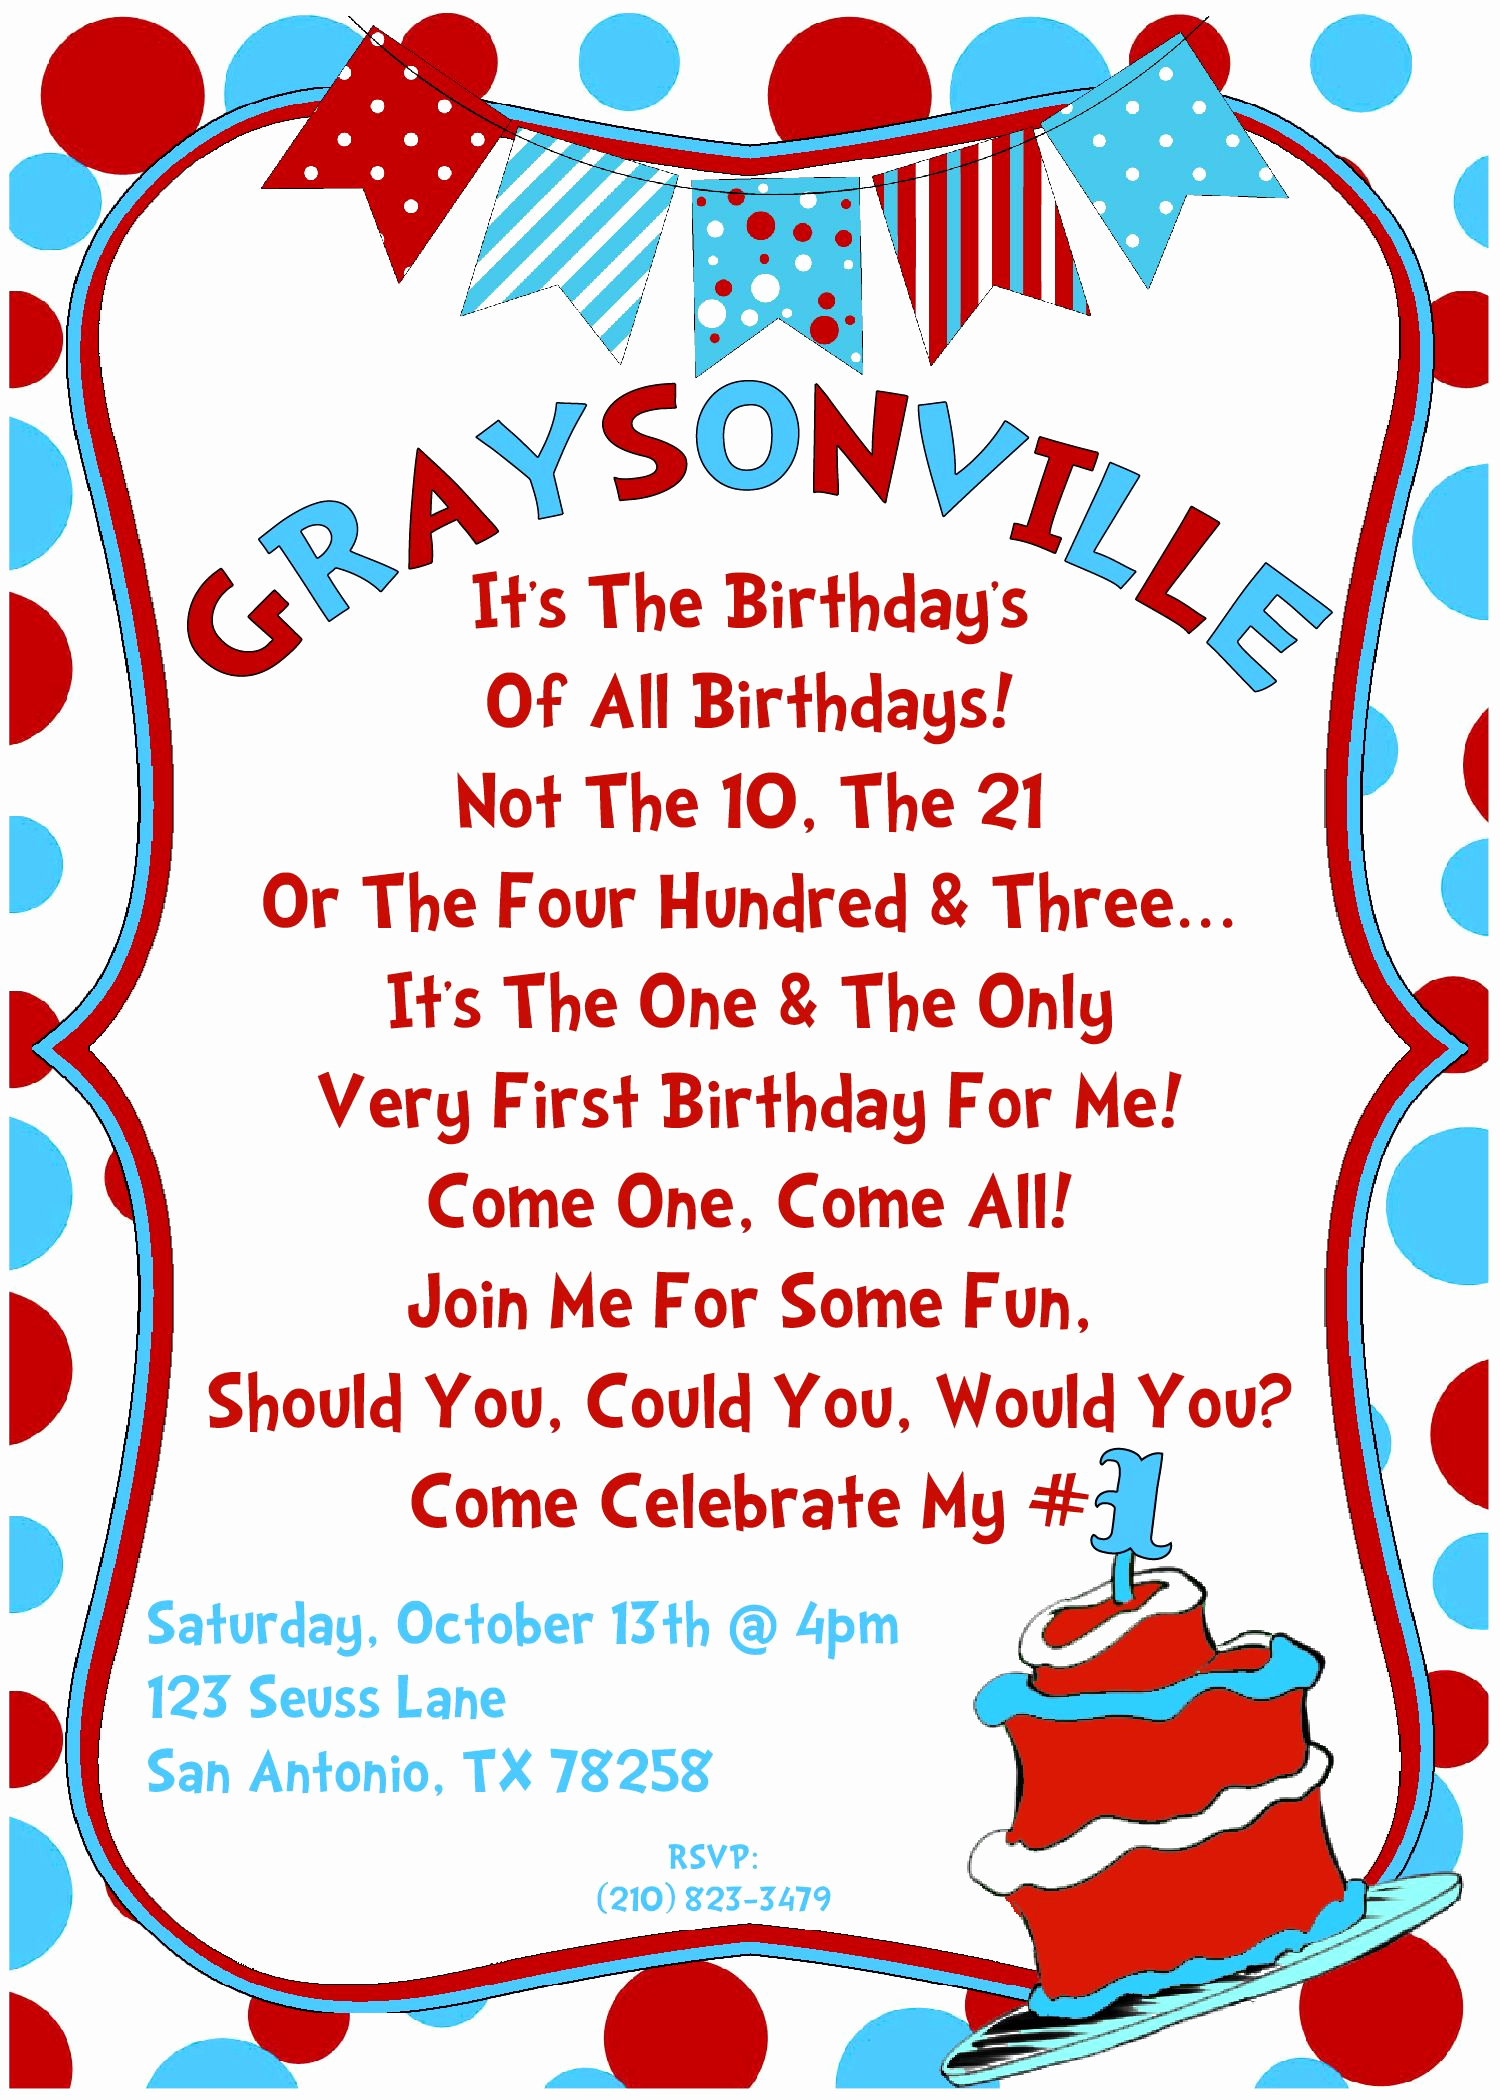 Dr Seuss Birthday Invitation Lovely Invitation 4 1st Birthday Ideas Pinterest